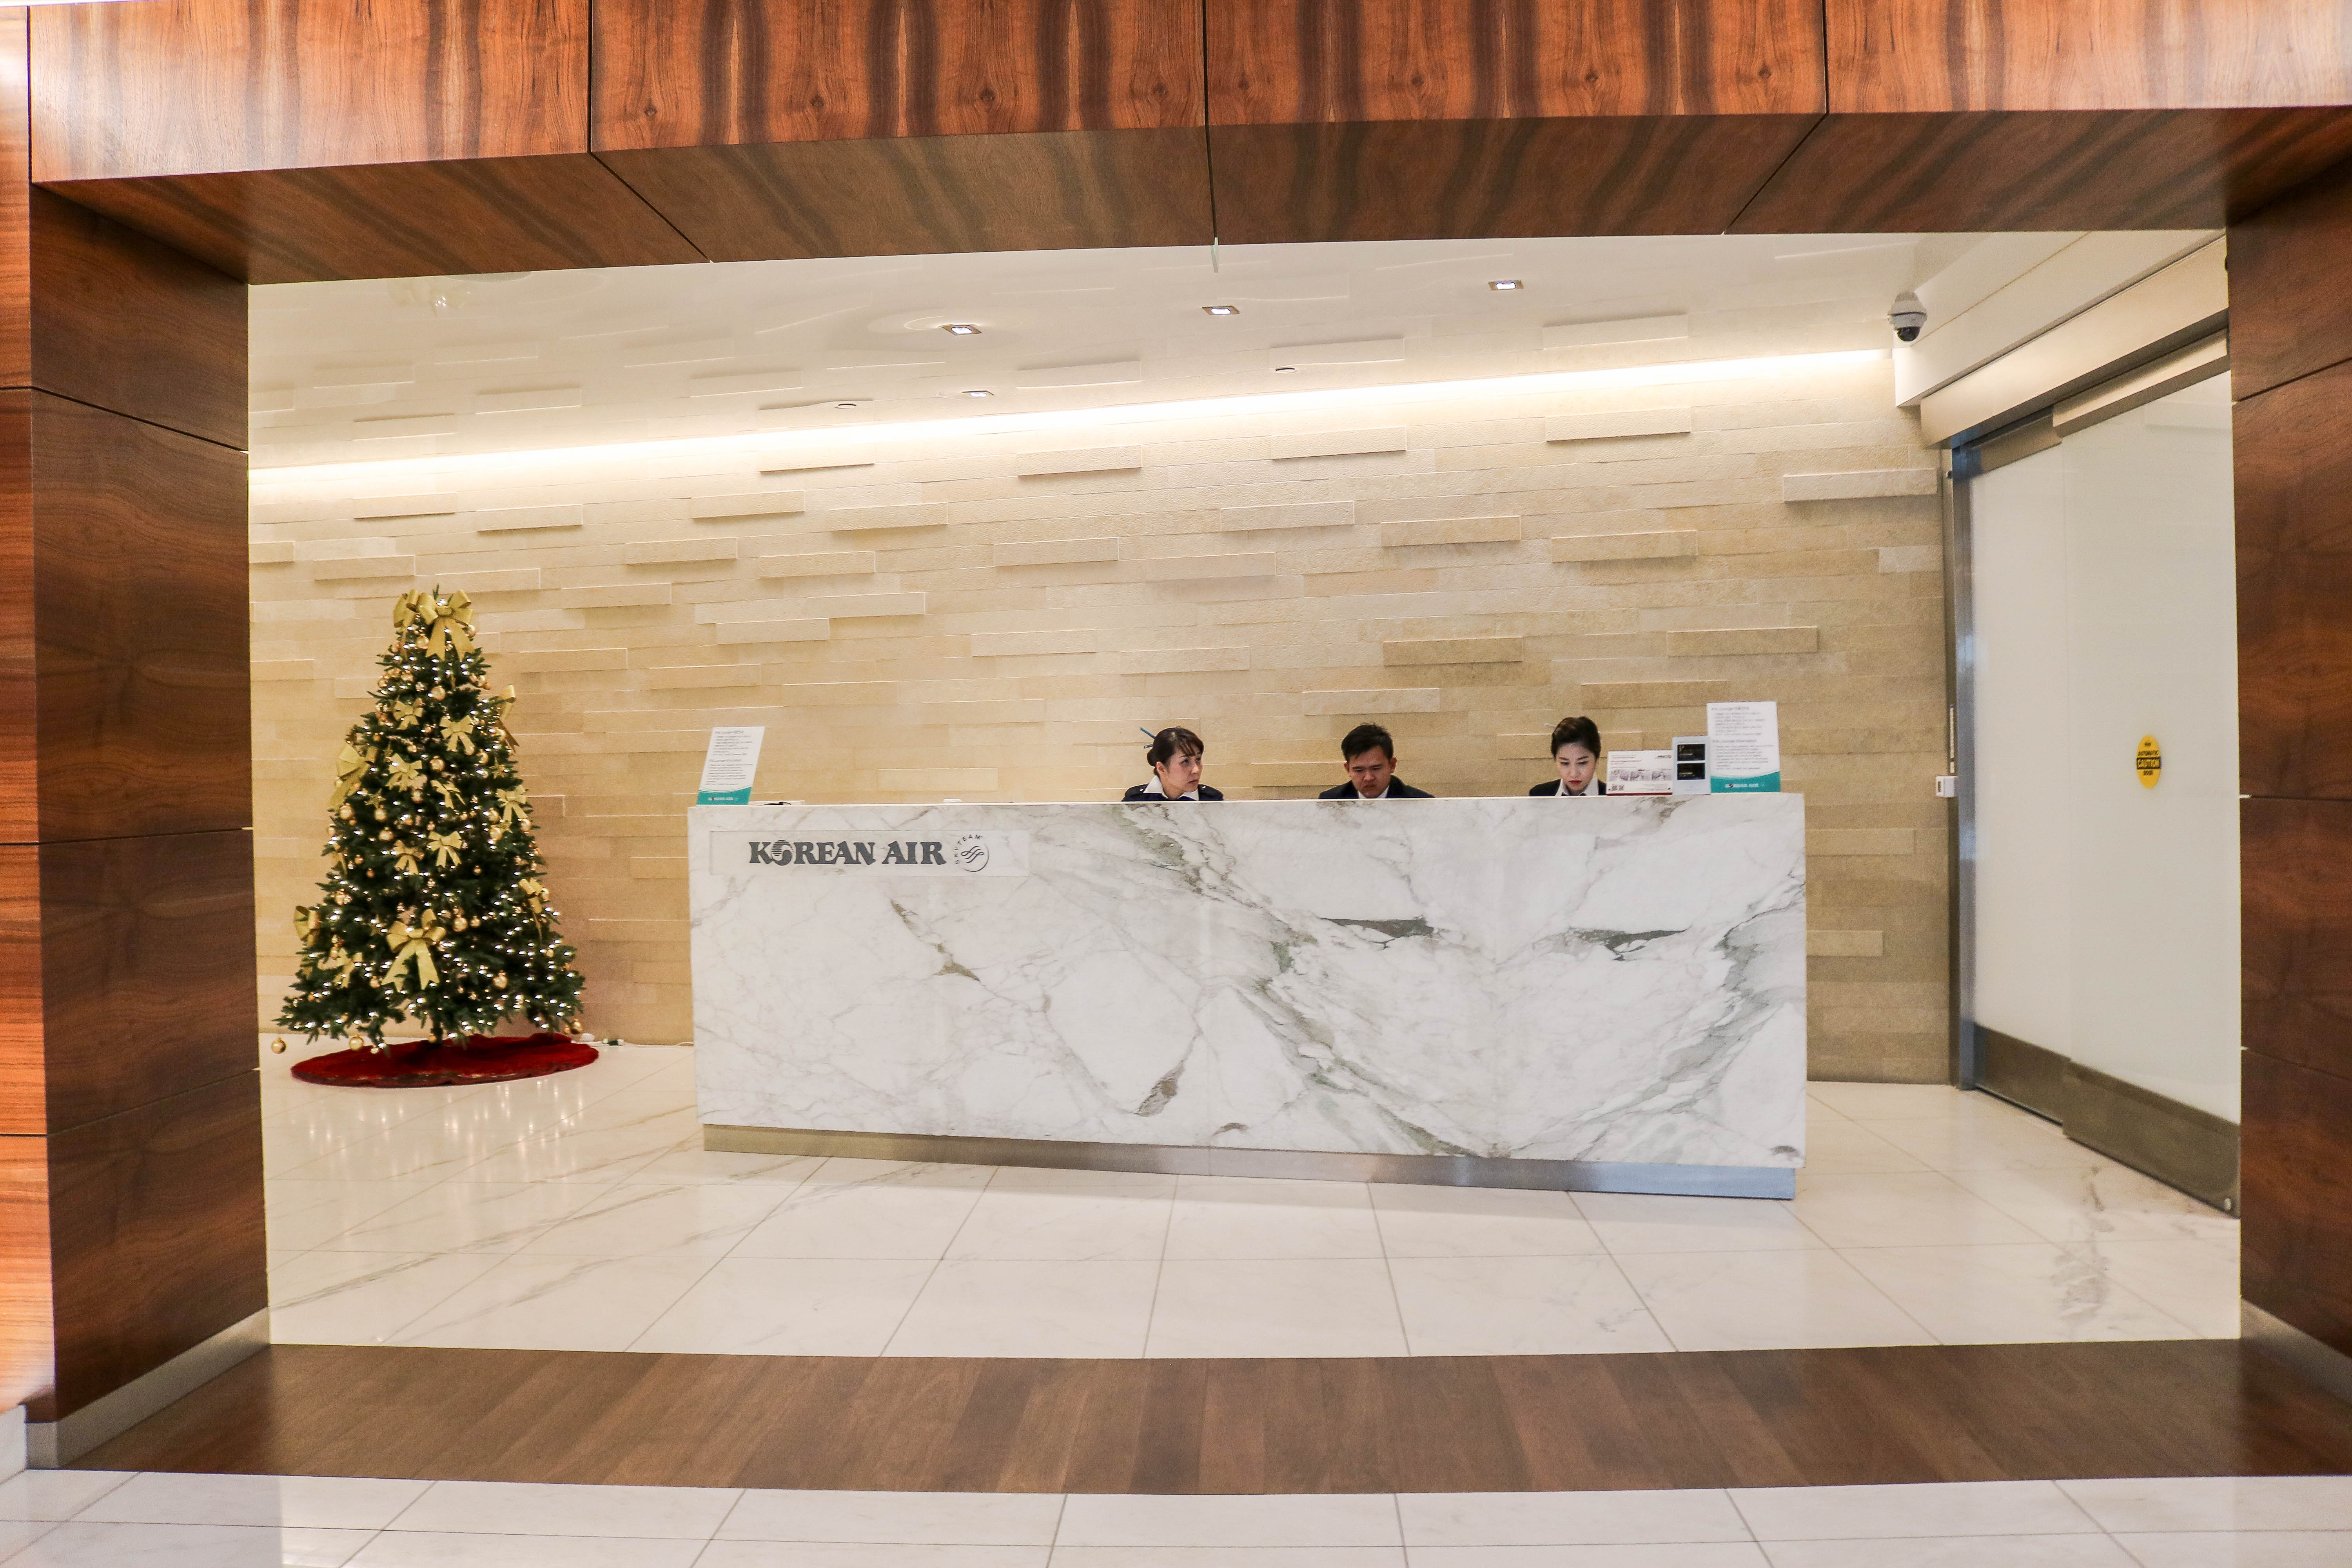 Korean Air Business Class Lounge at LAX Airport